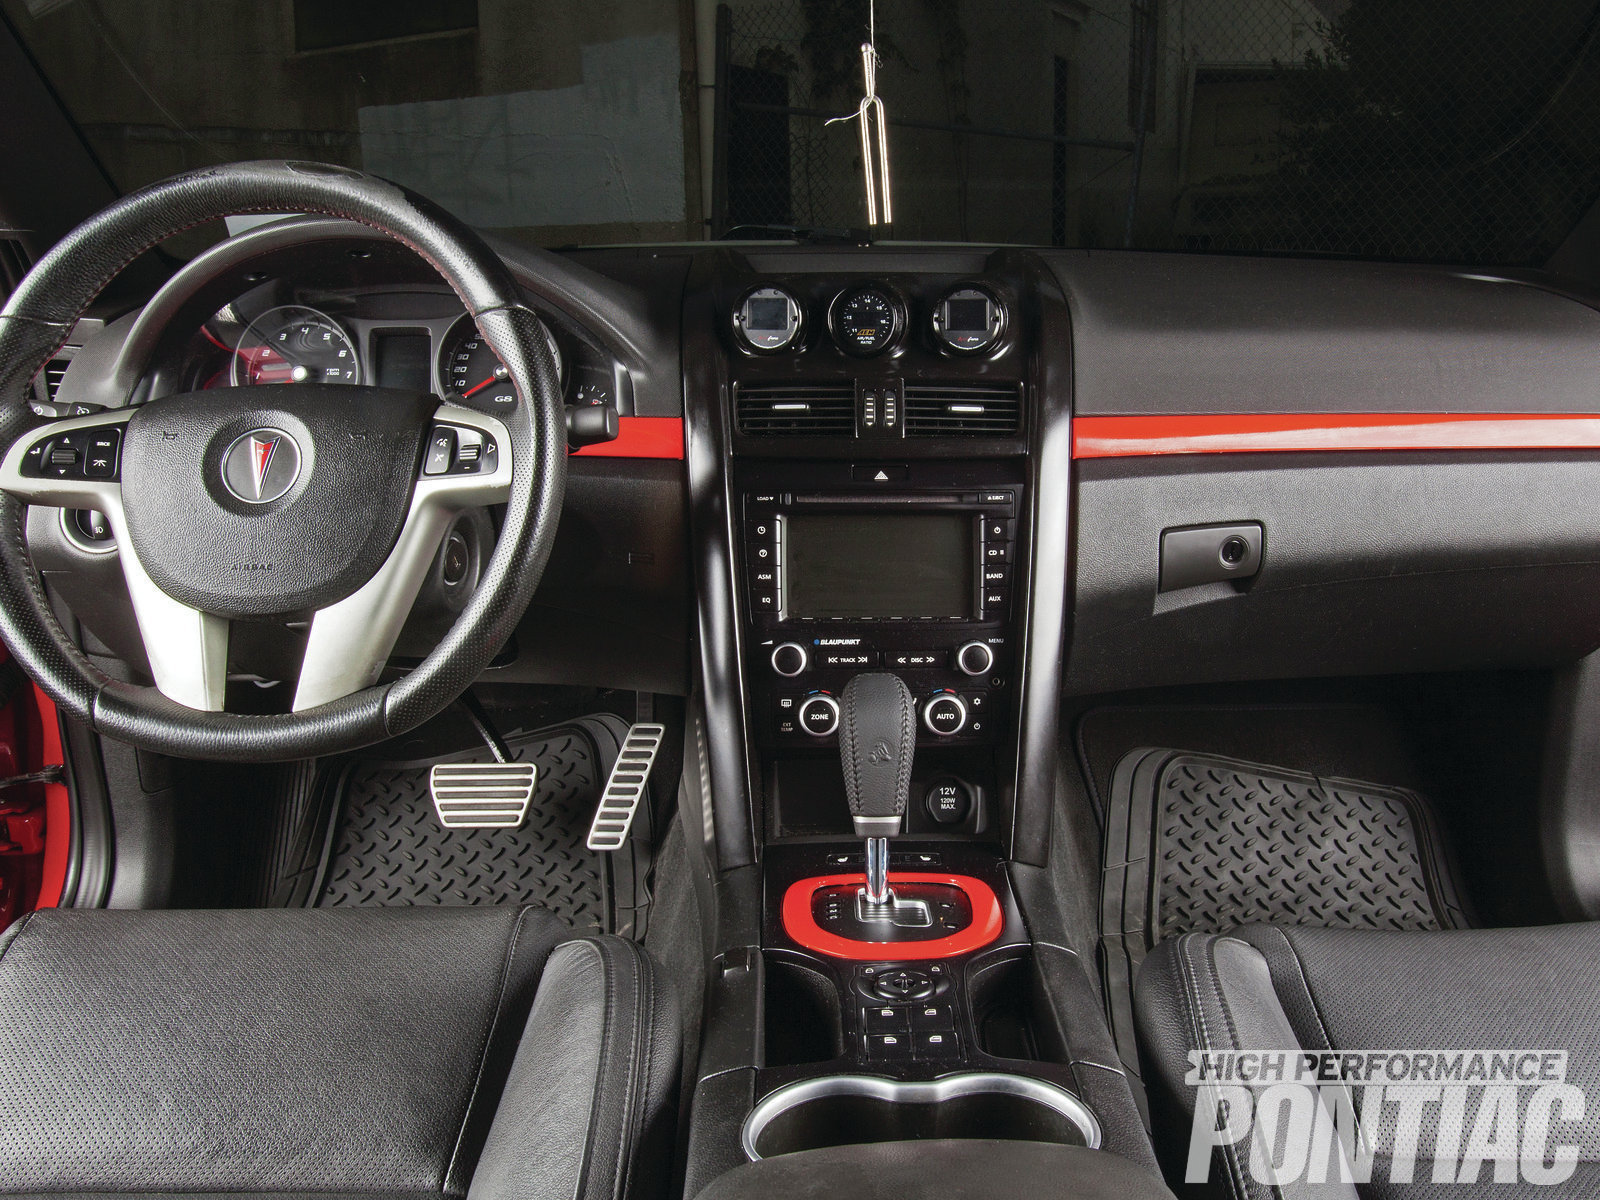 2008 pontiac g8 gt - the down-under express - latest news, features